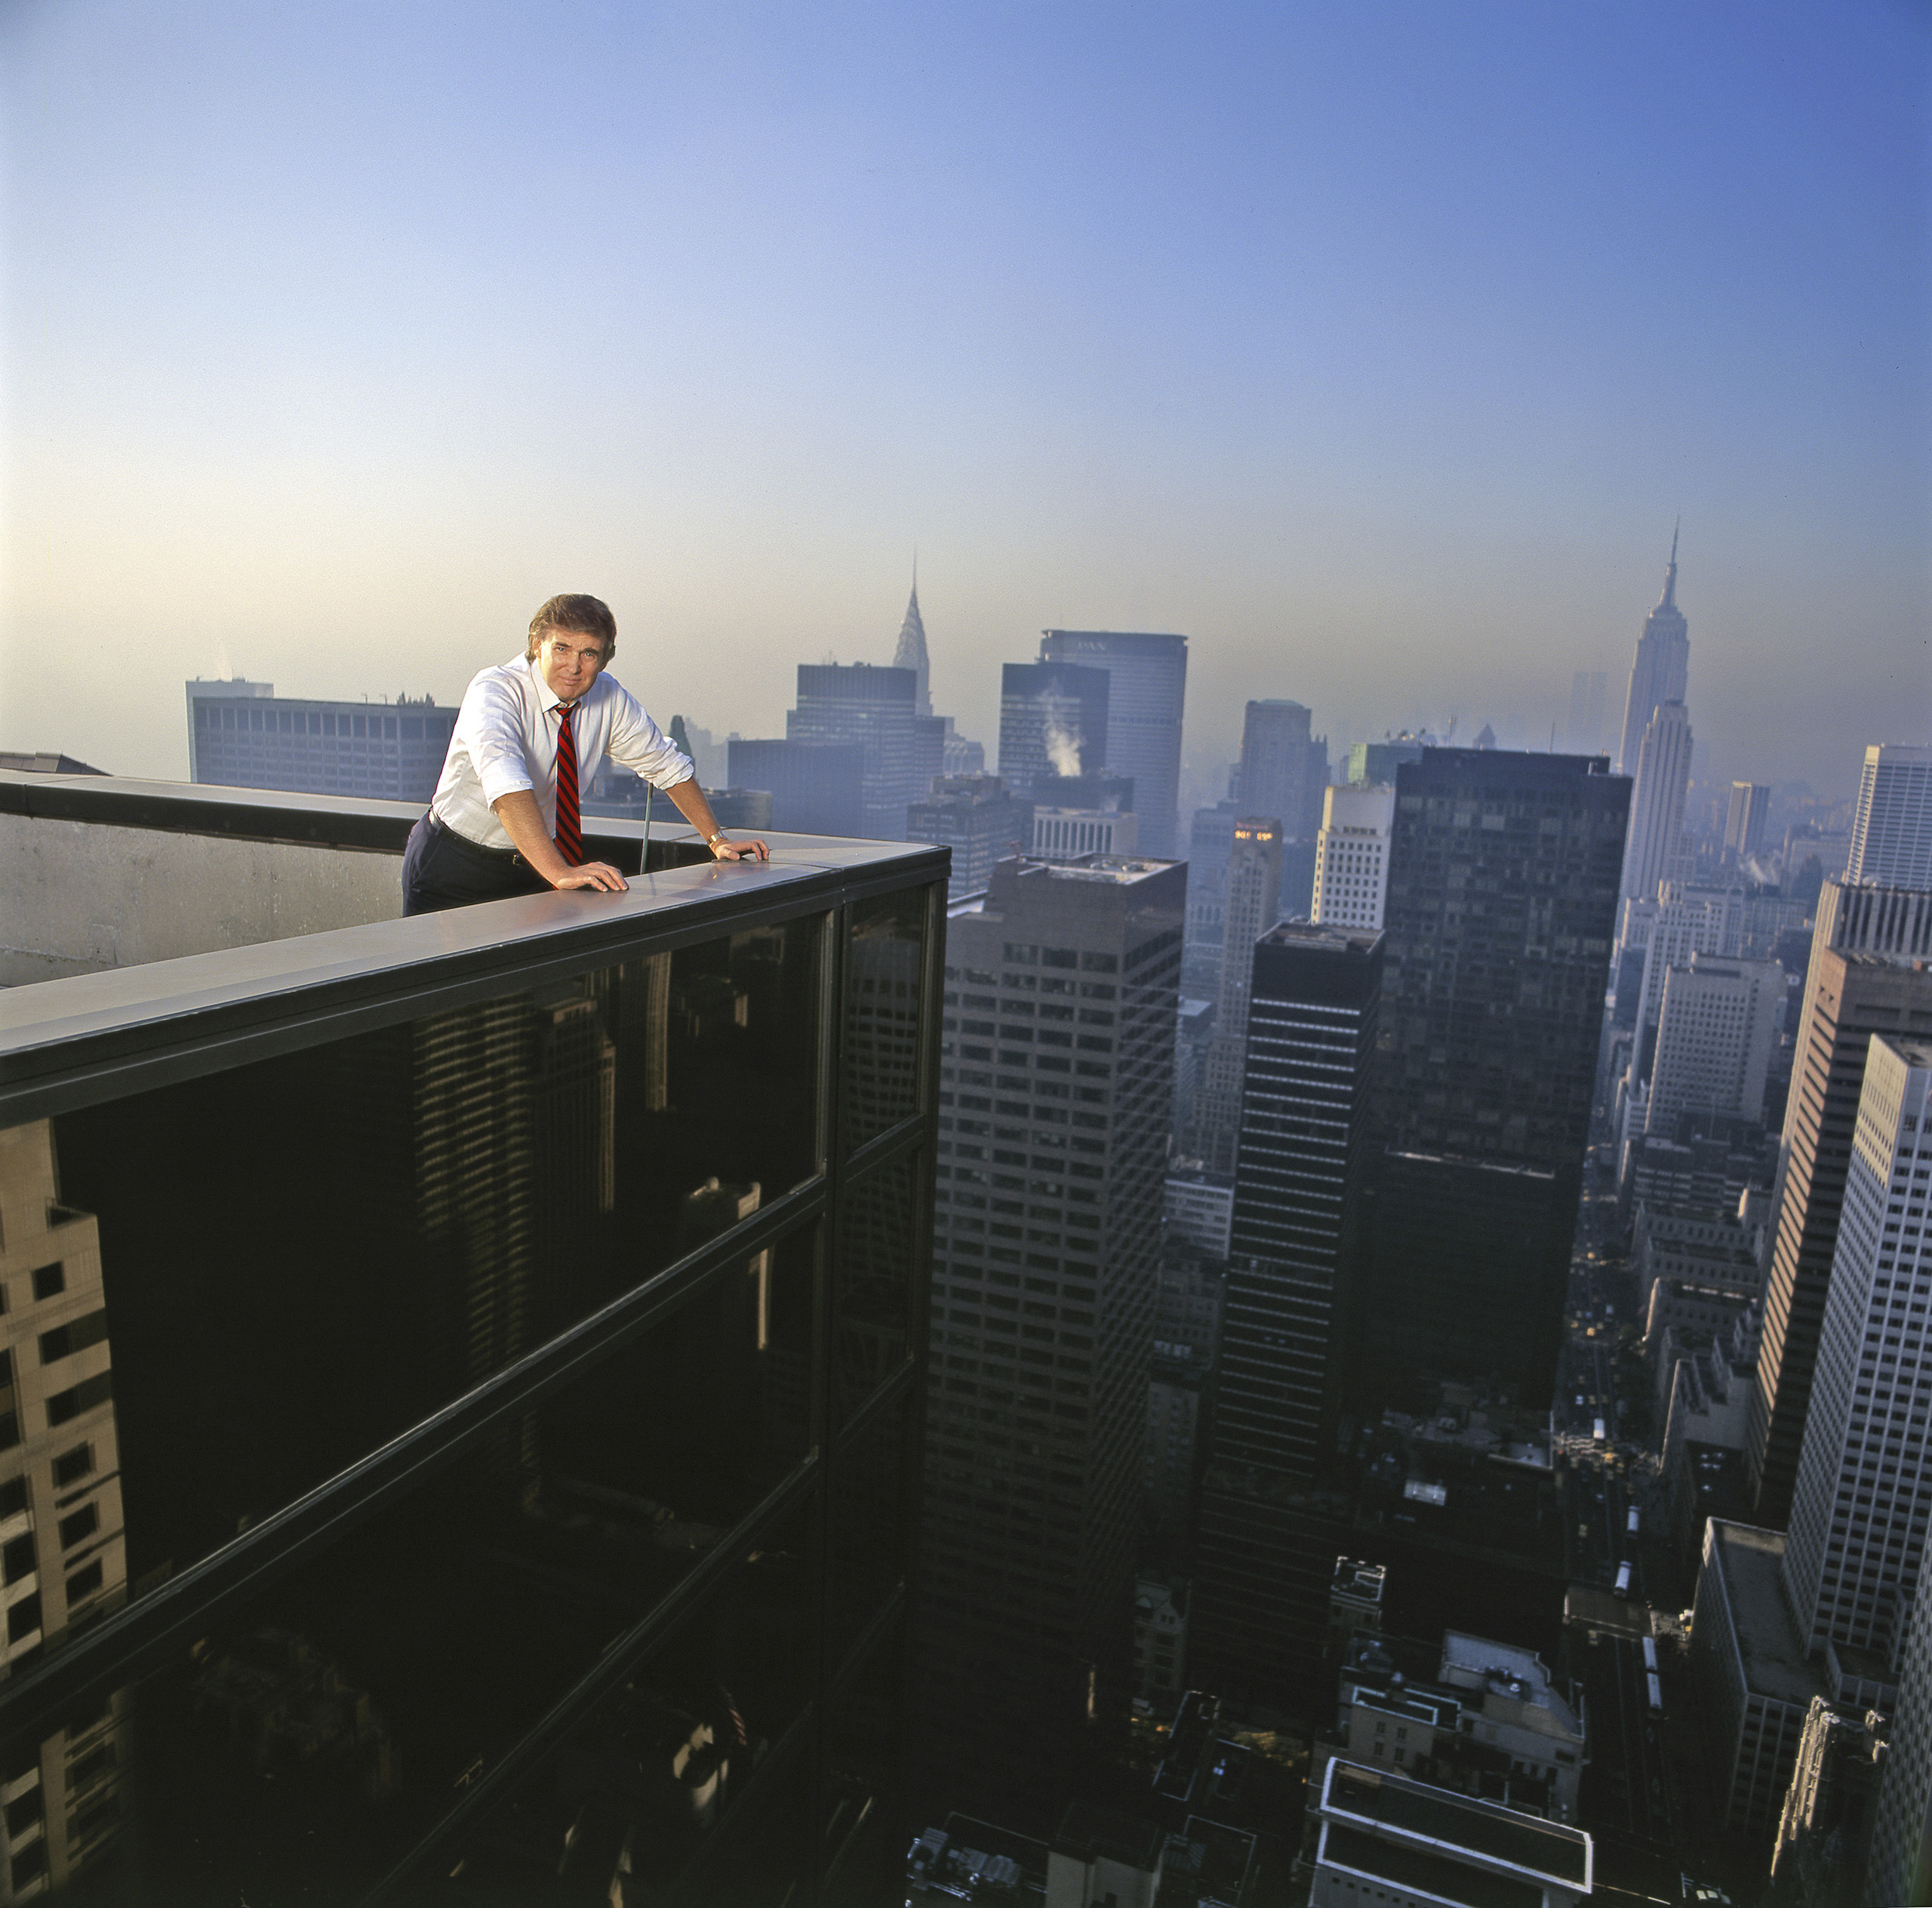 <b>1987</b> Trump stands on top of Trump Tower on Fifth Avenue in New York City.